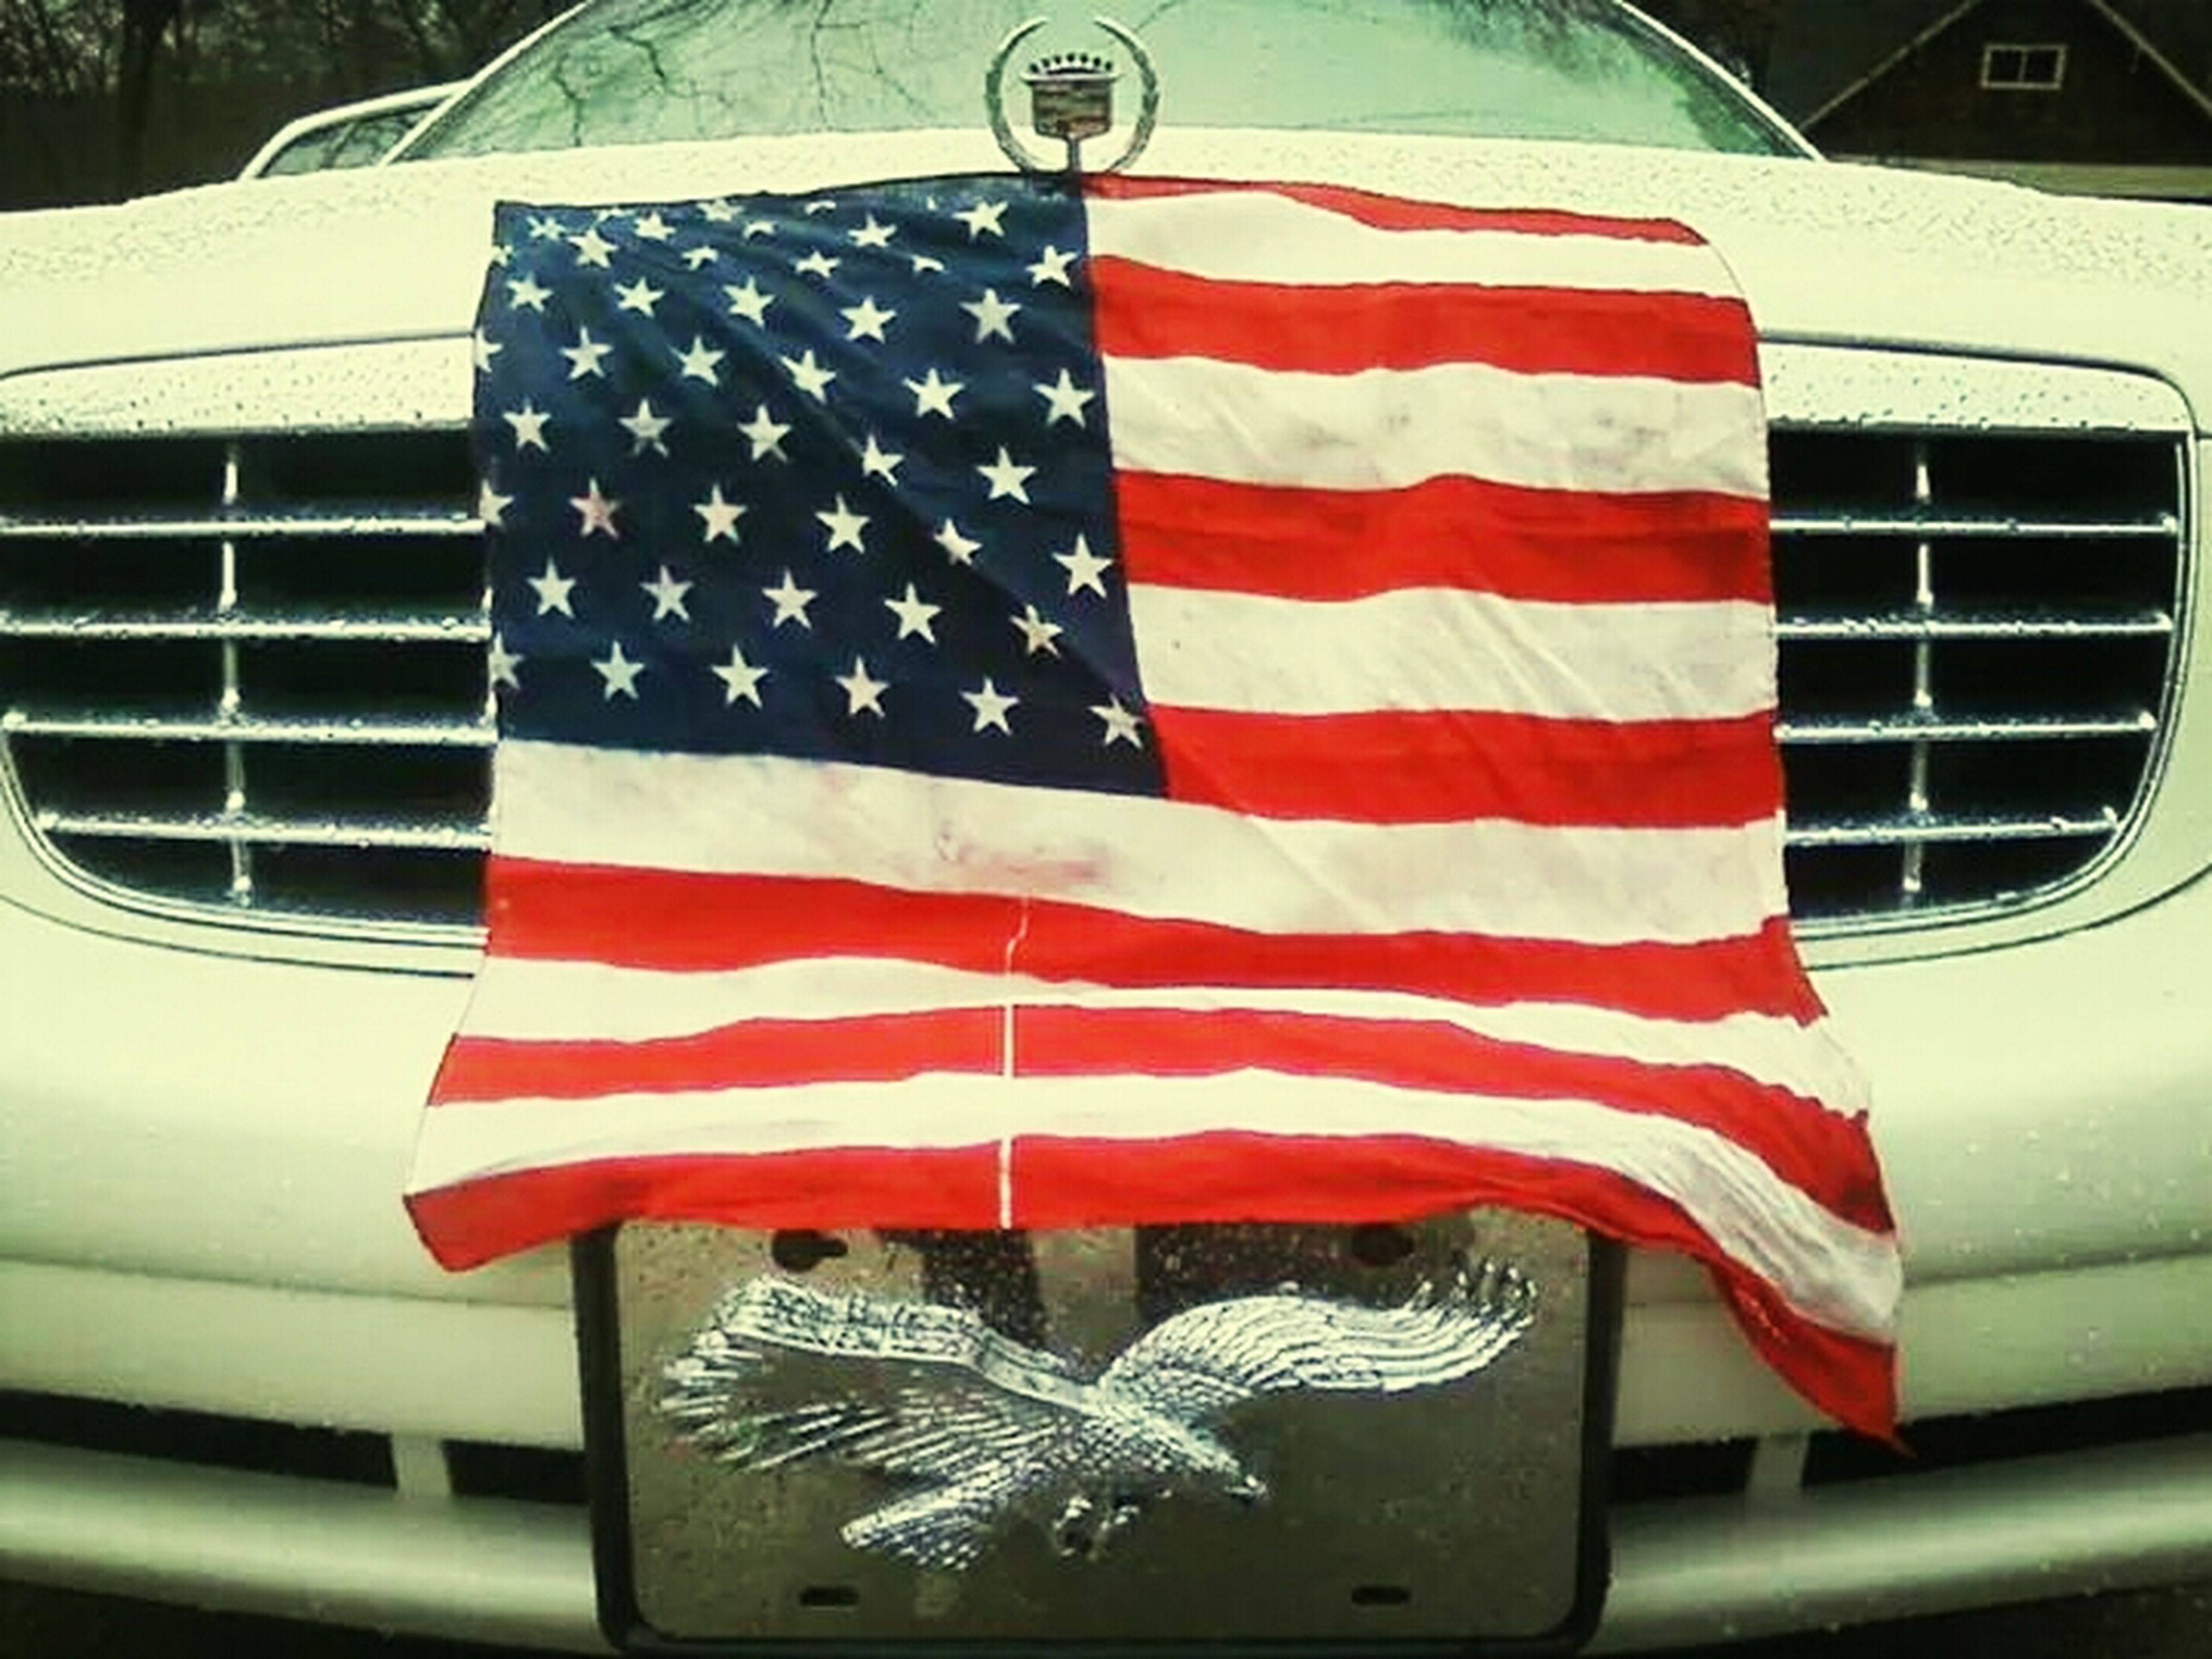 patriotism, american flag, flag, national flag, identity, striped, red, transportation, culture, star shape, white color, pride, mode of transport, car, day, road marking, wind, pole, low angle view, no people